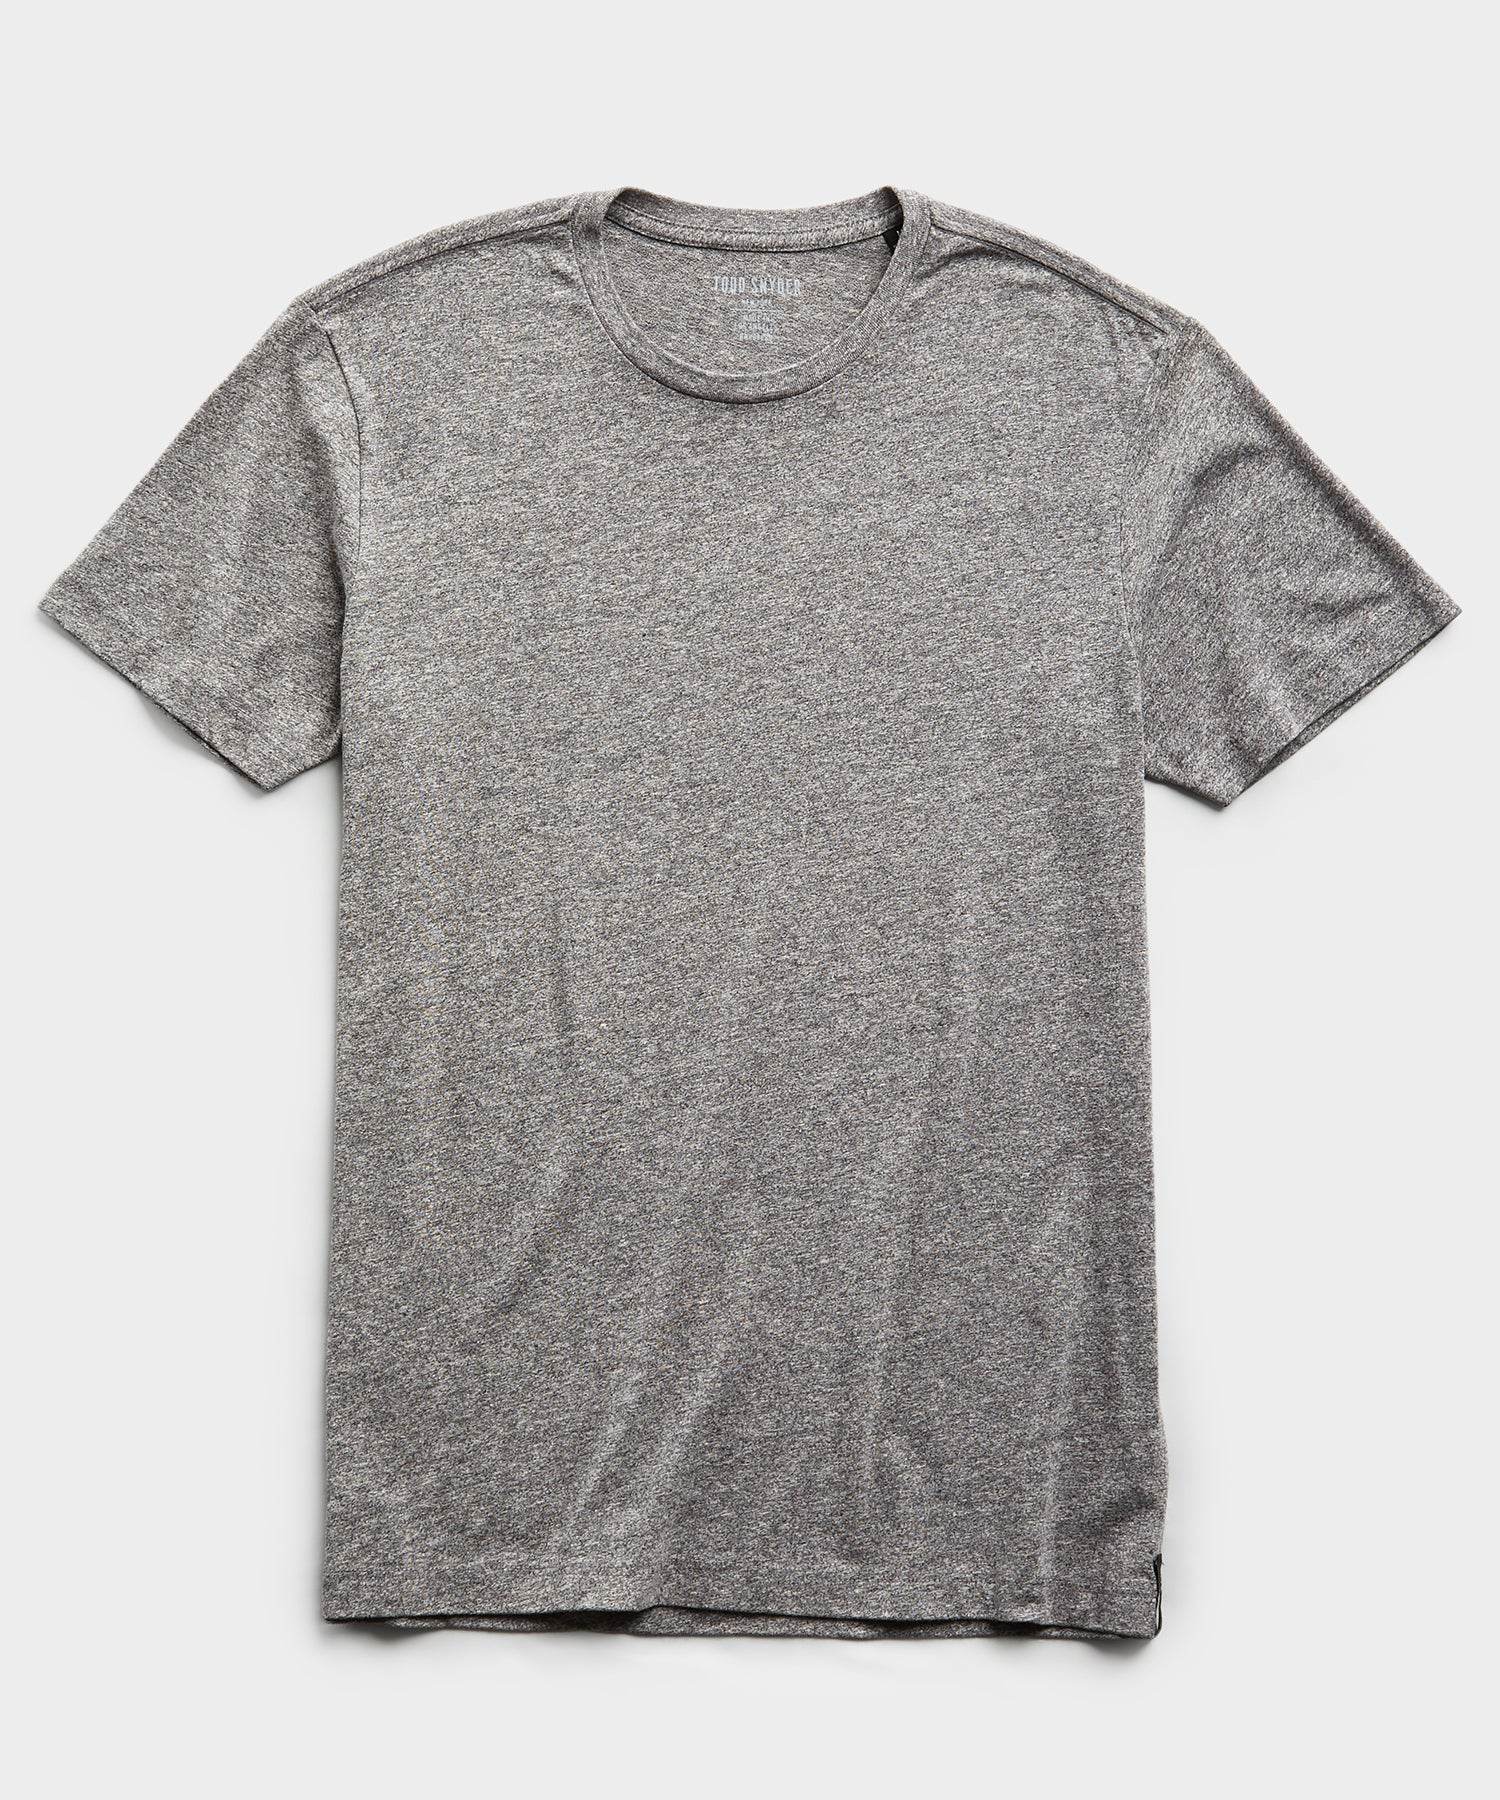 Made in L.A. Jersey T-Shirt in Grey Heather